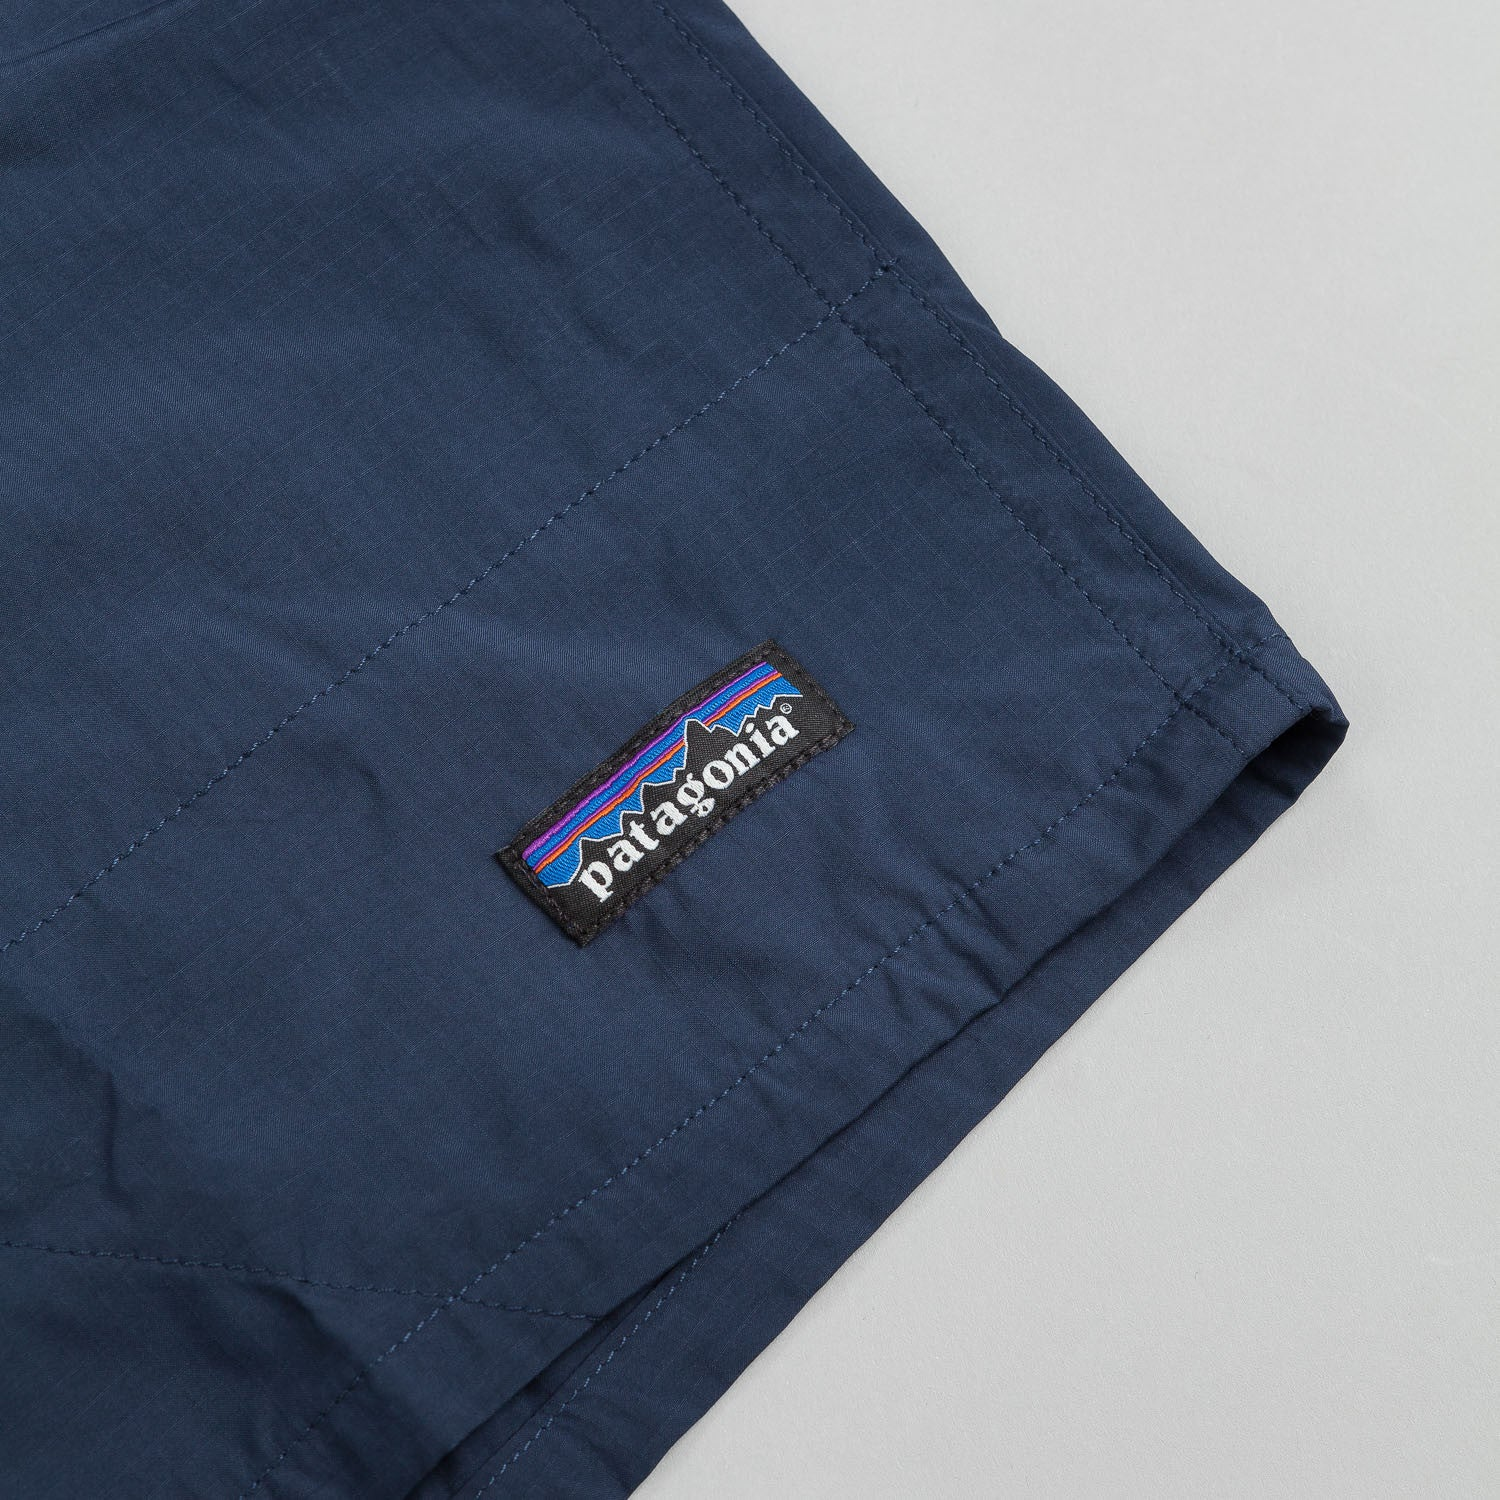 Patagonia Baggies Lights Shorts - Navy Blue